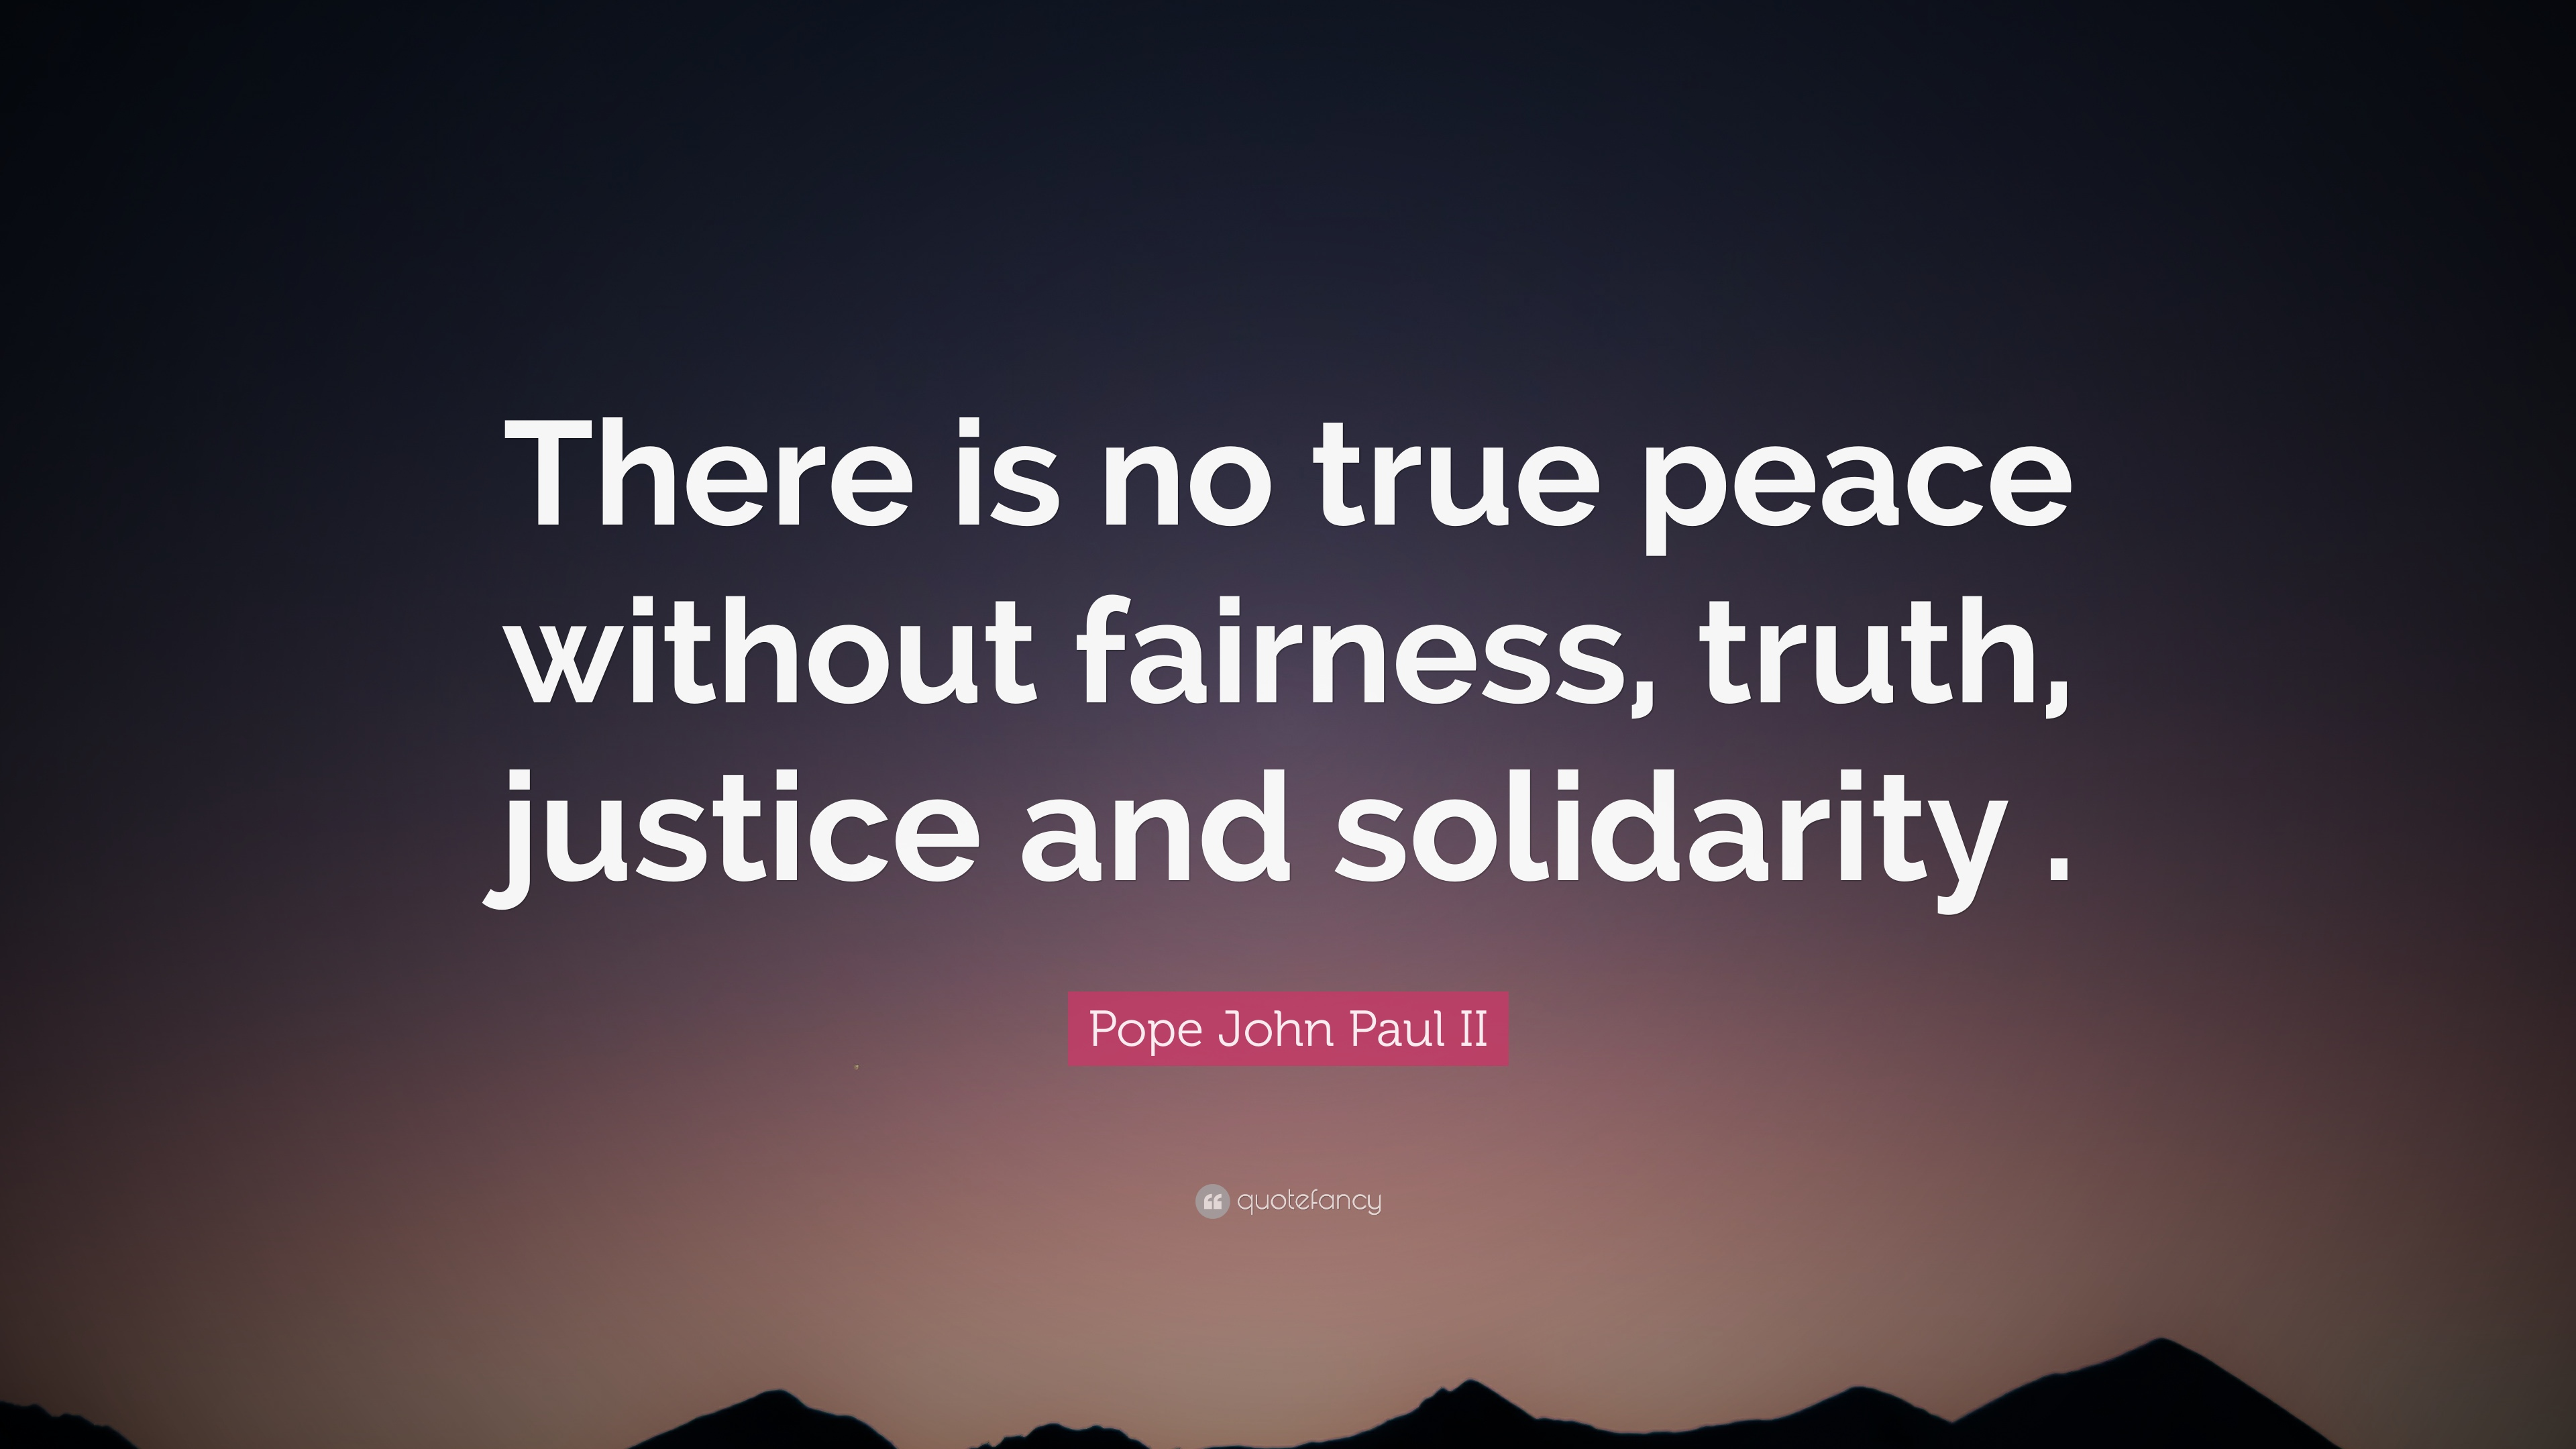 Pope John Paul Ii Quote There Is No True Peace Without Fairness